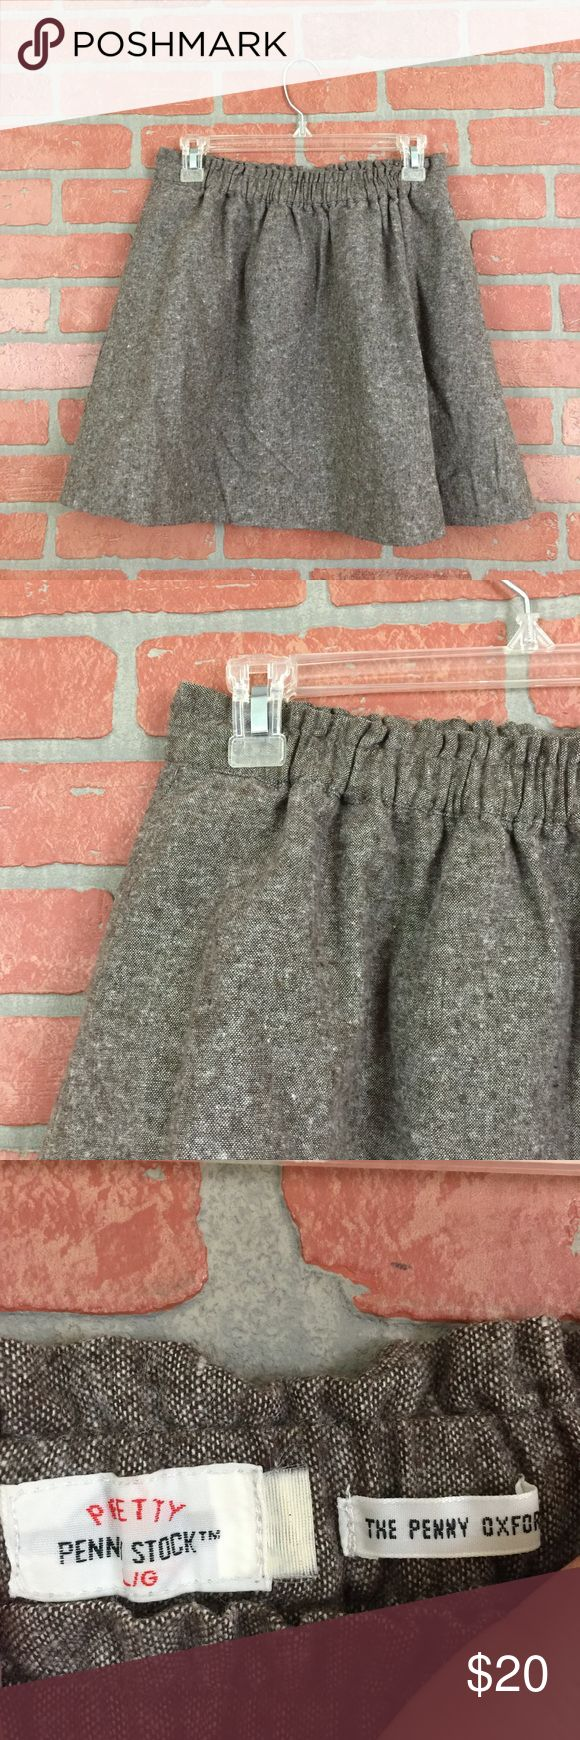 """Pretty penny stock Oxford skirt, linen #322 This Pretty Penny Stock """"Penny Oxford"""" a-line mini skirt is a cute skirt to wear all year round! It is a nice lined linen material and has pockets! 😍.  It is a size Large but measures 15-16.5"""" flat across the elastic waist and is 17"""" long. It is in good preowned condition with no known flaws. pretty penny stock Skirts Mini"""